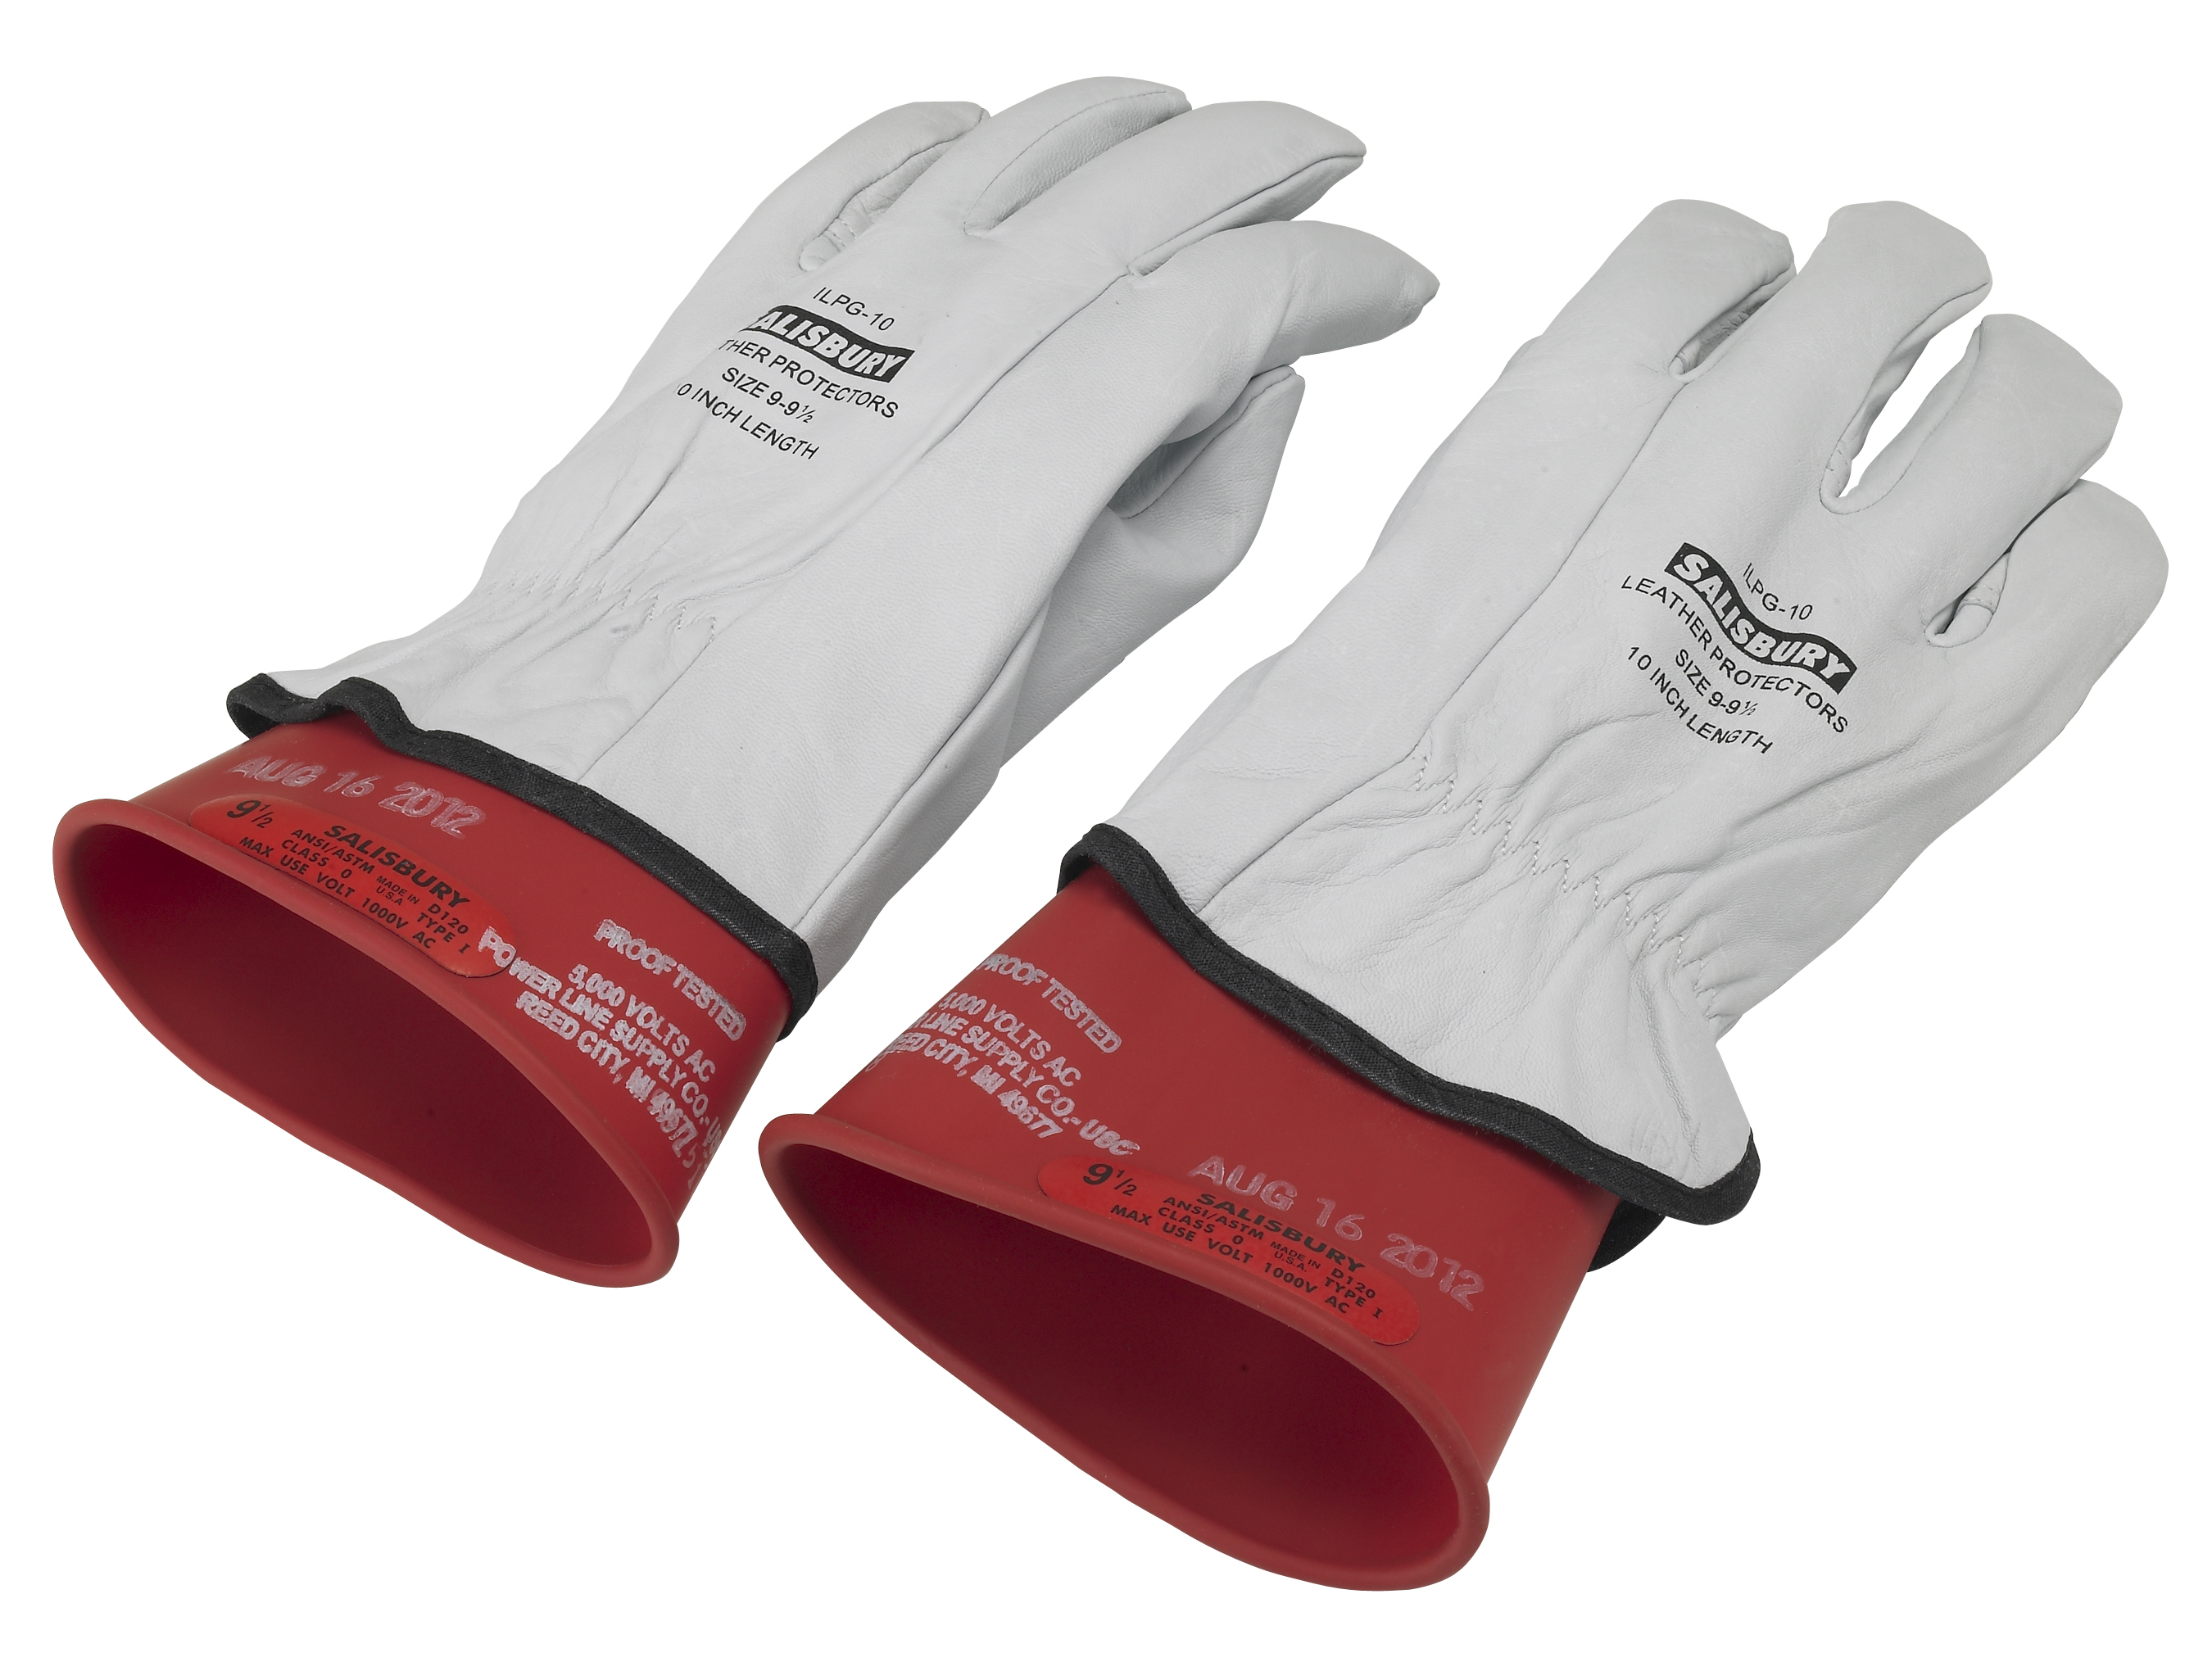 High Voltage Tools : Hybrid high voltage safety gloves small otc tools